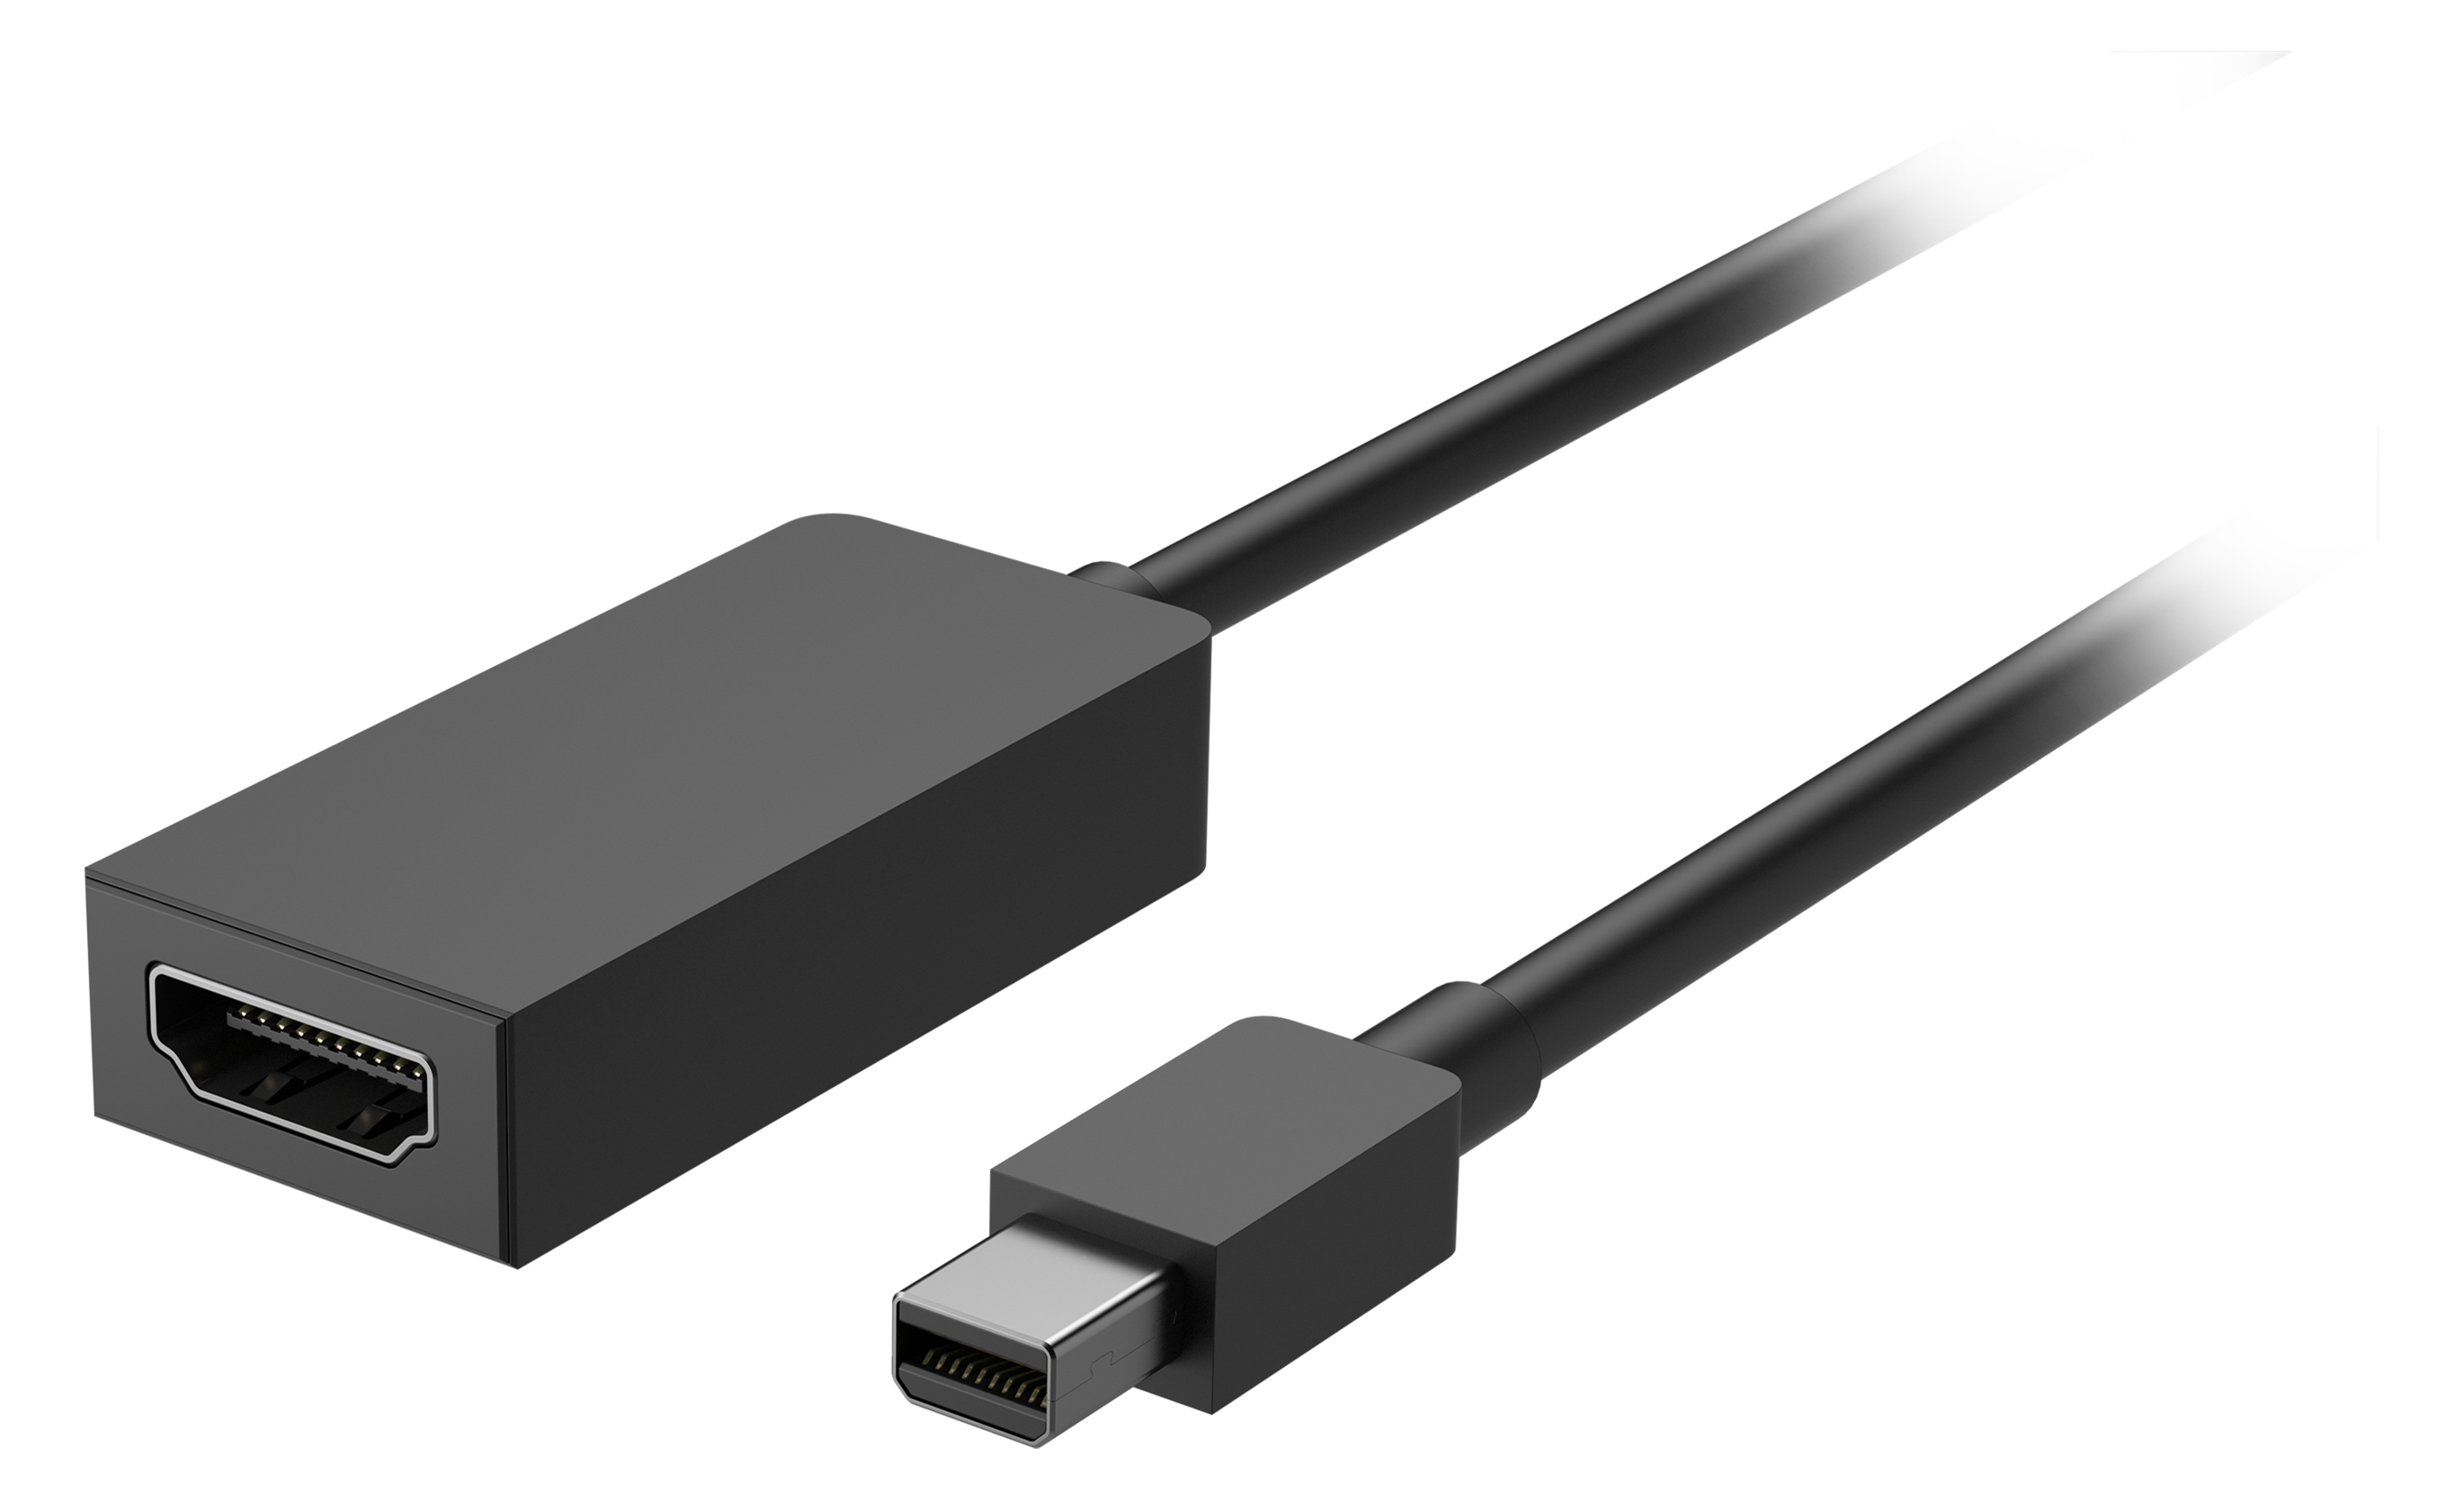 Surface Mini DisplayPort to HDMI 2.0 Adapter   How To Install A Code On Your Website?